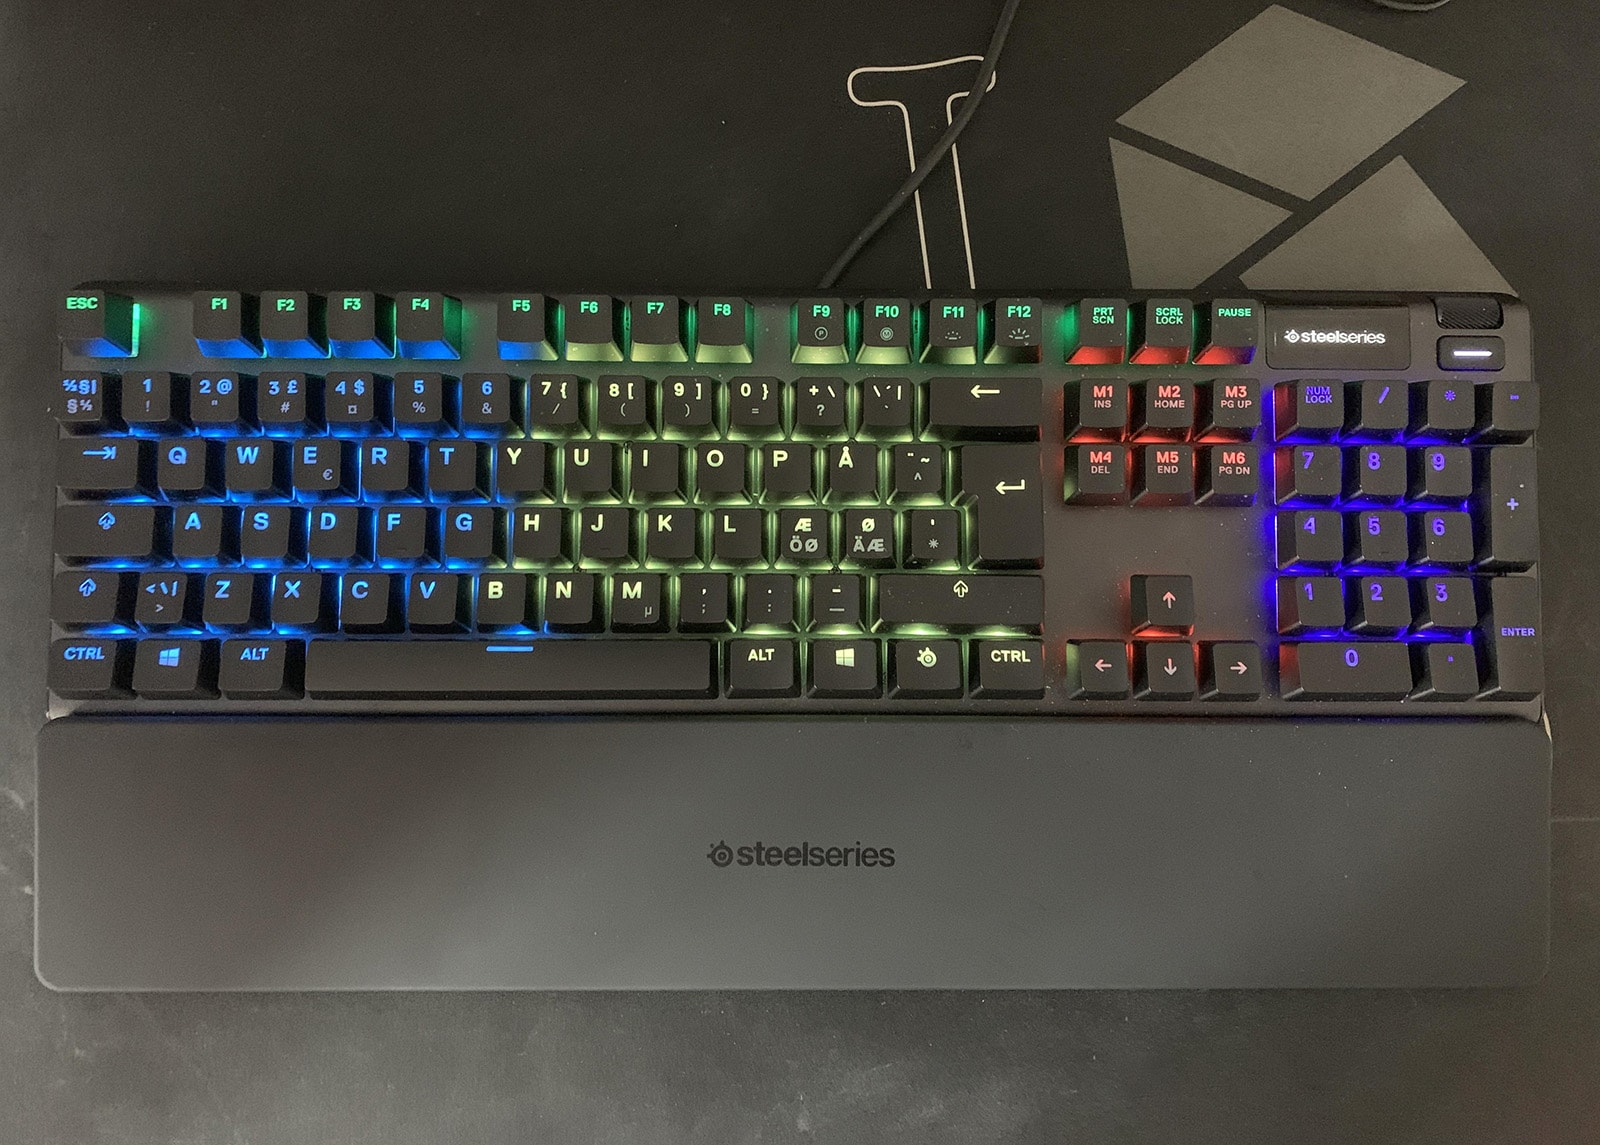 steelseries apex 5, our pick for best gaming keyboard under $100